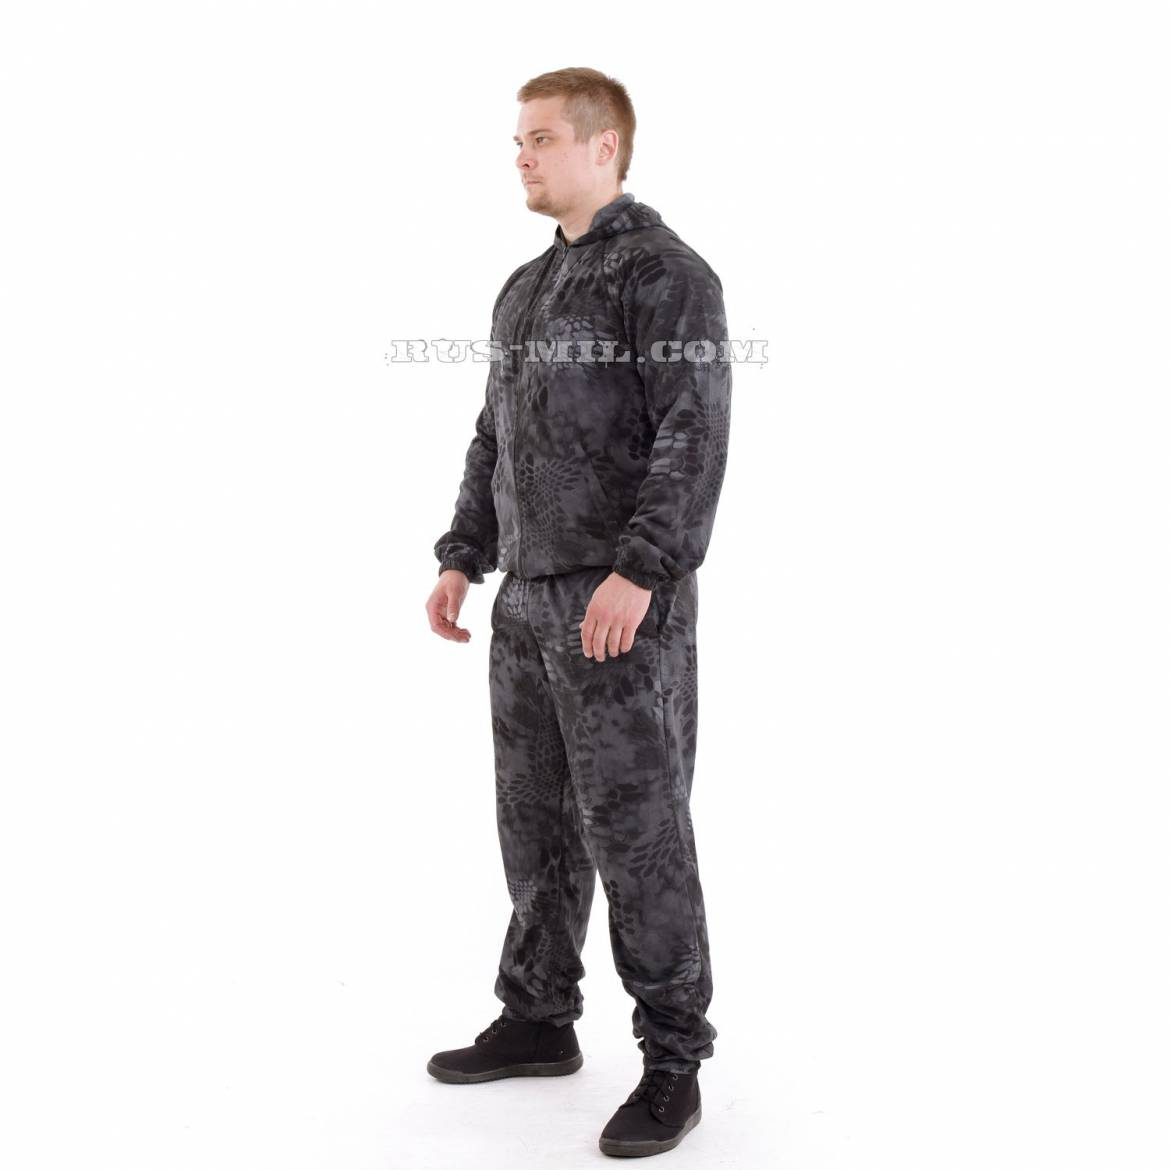 knitted-Suit-in-22Typhon22-Colour-Russia.jpg